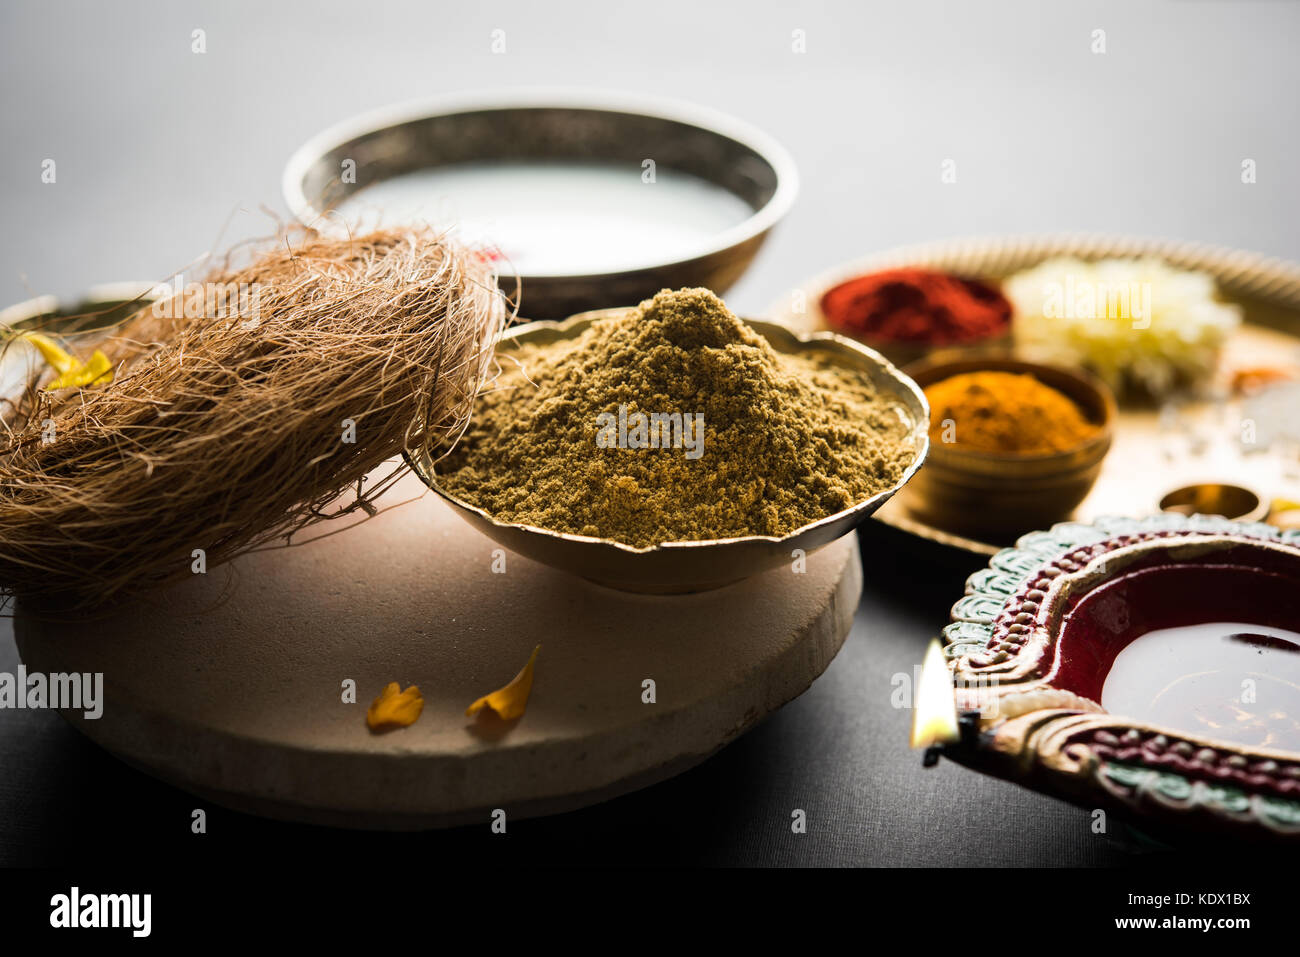 Abhyanga Snan on first day of Diwali - special herbal bath with ubtan or Utne, a mix herbal powder to have bath - Stock Image